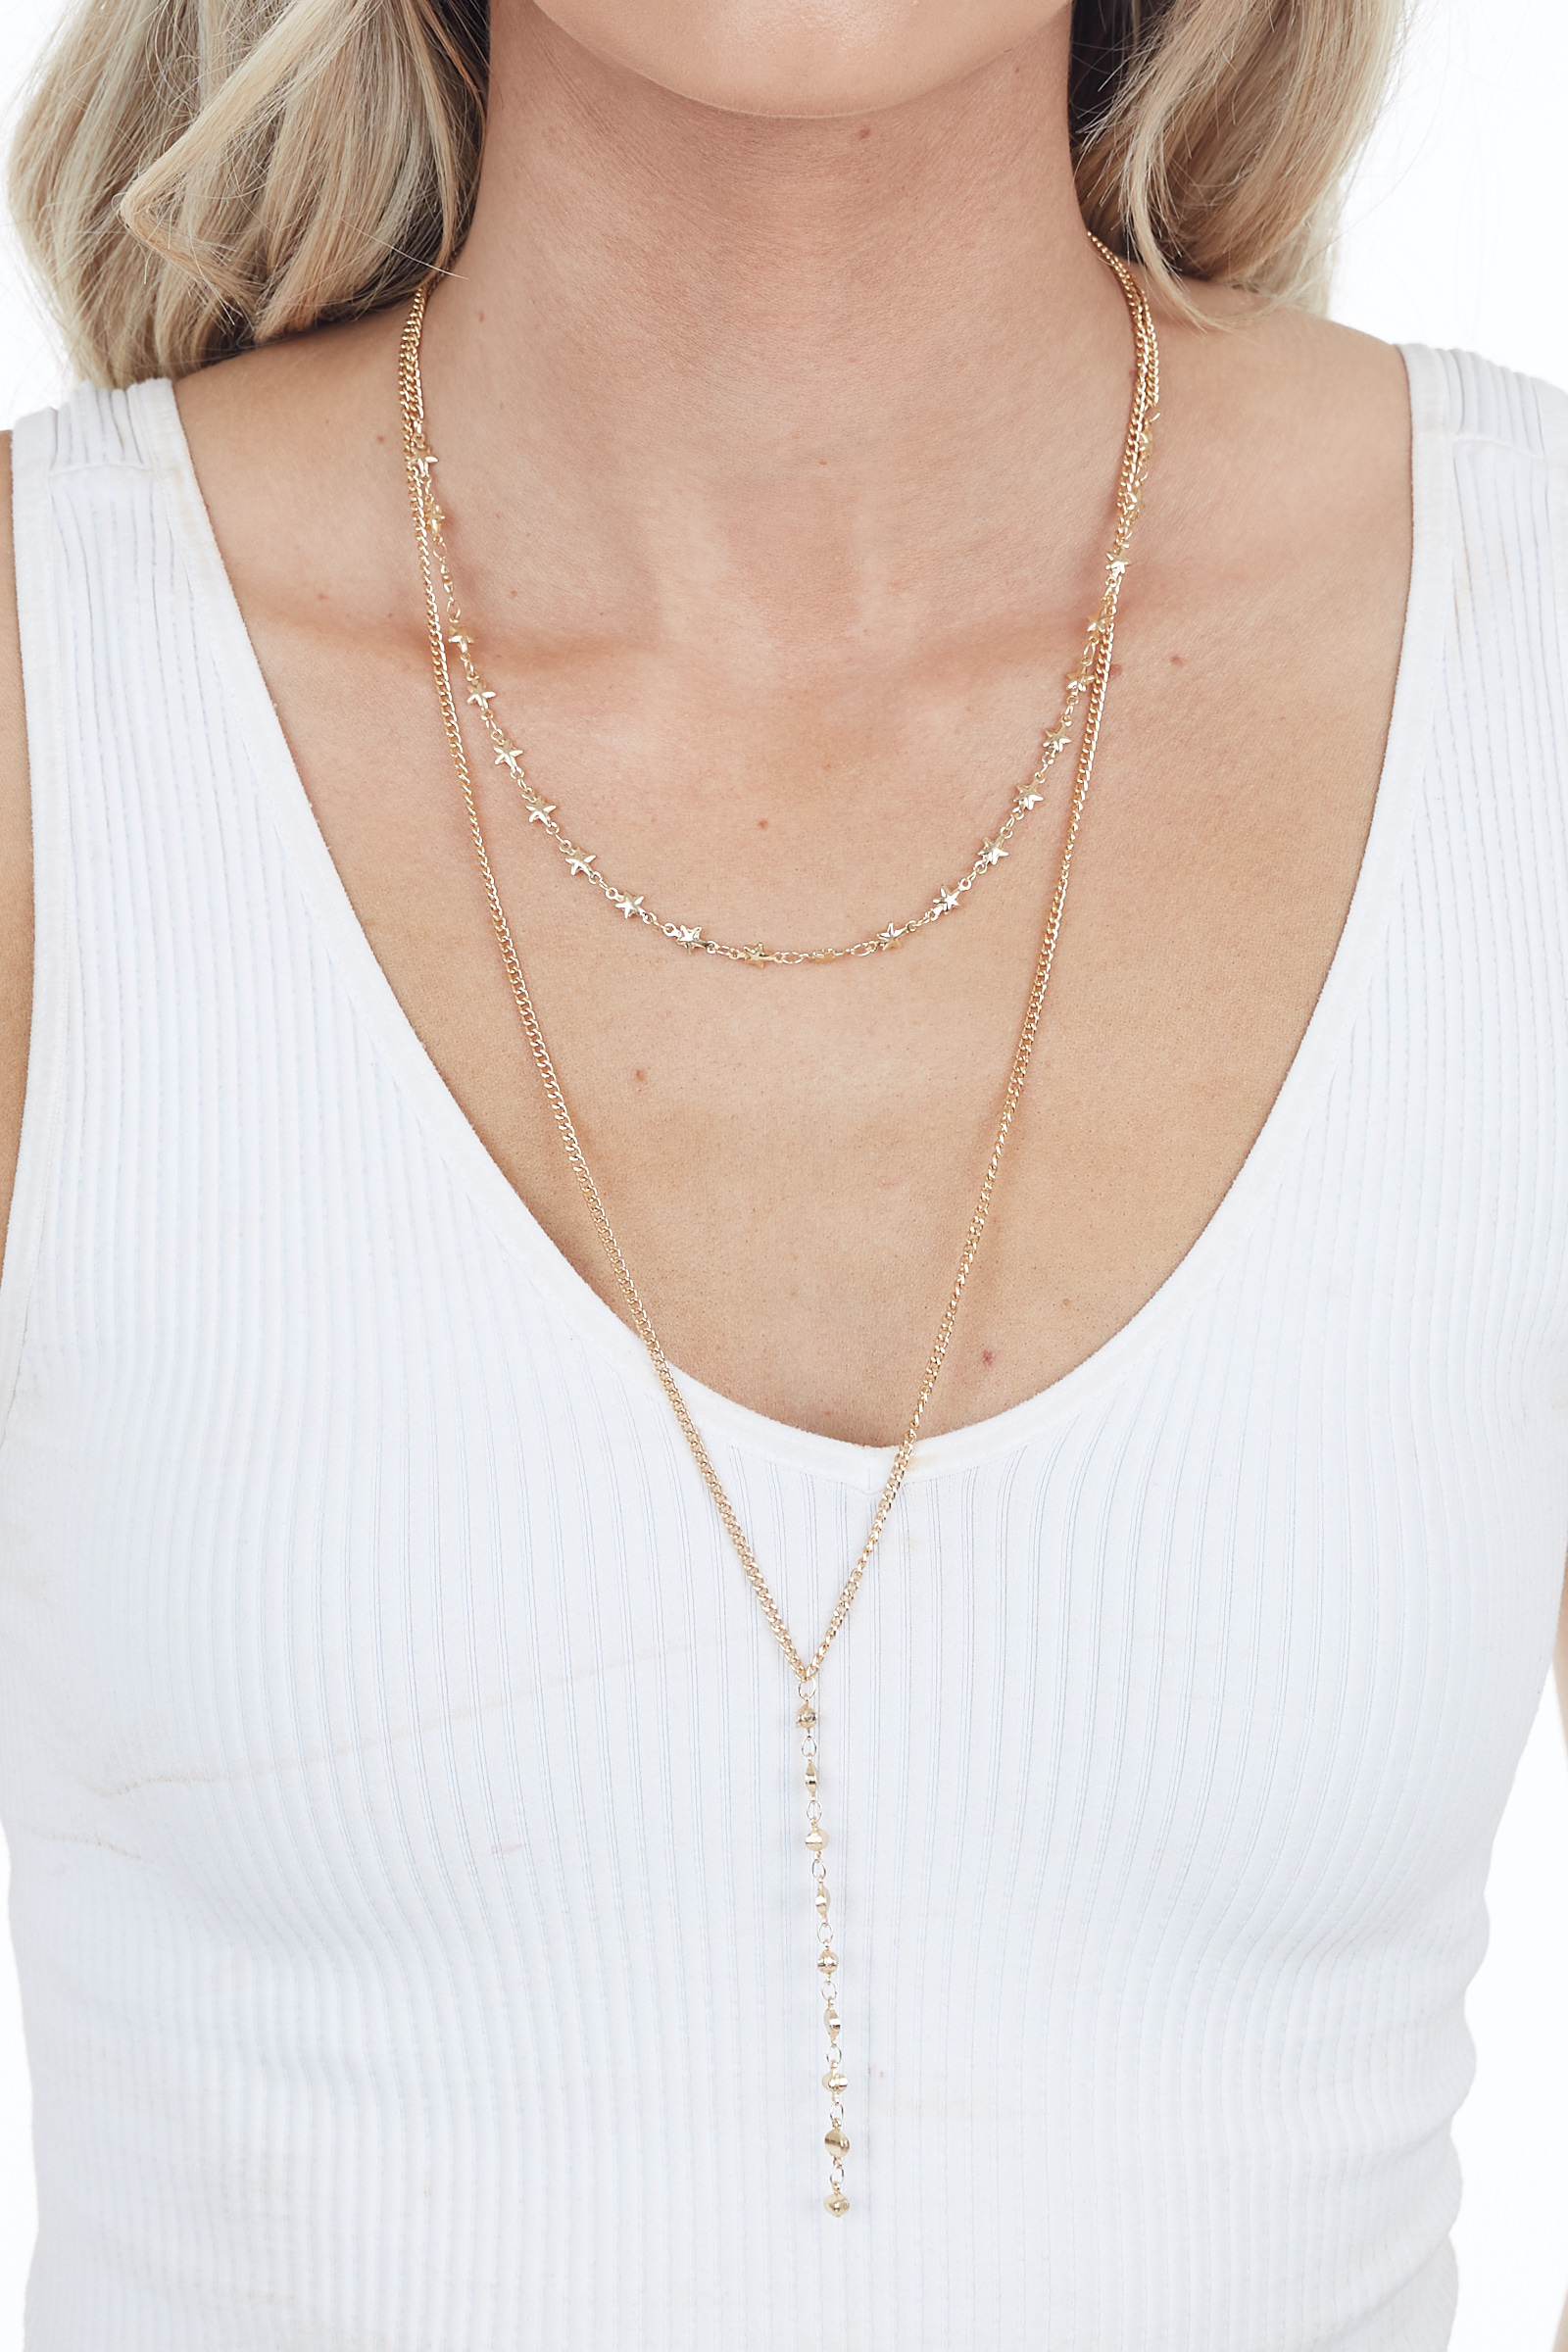 Gold Layered Necklace with Star Charm Details